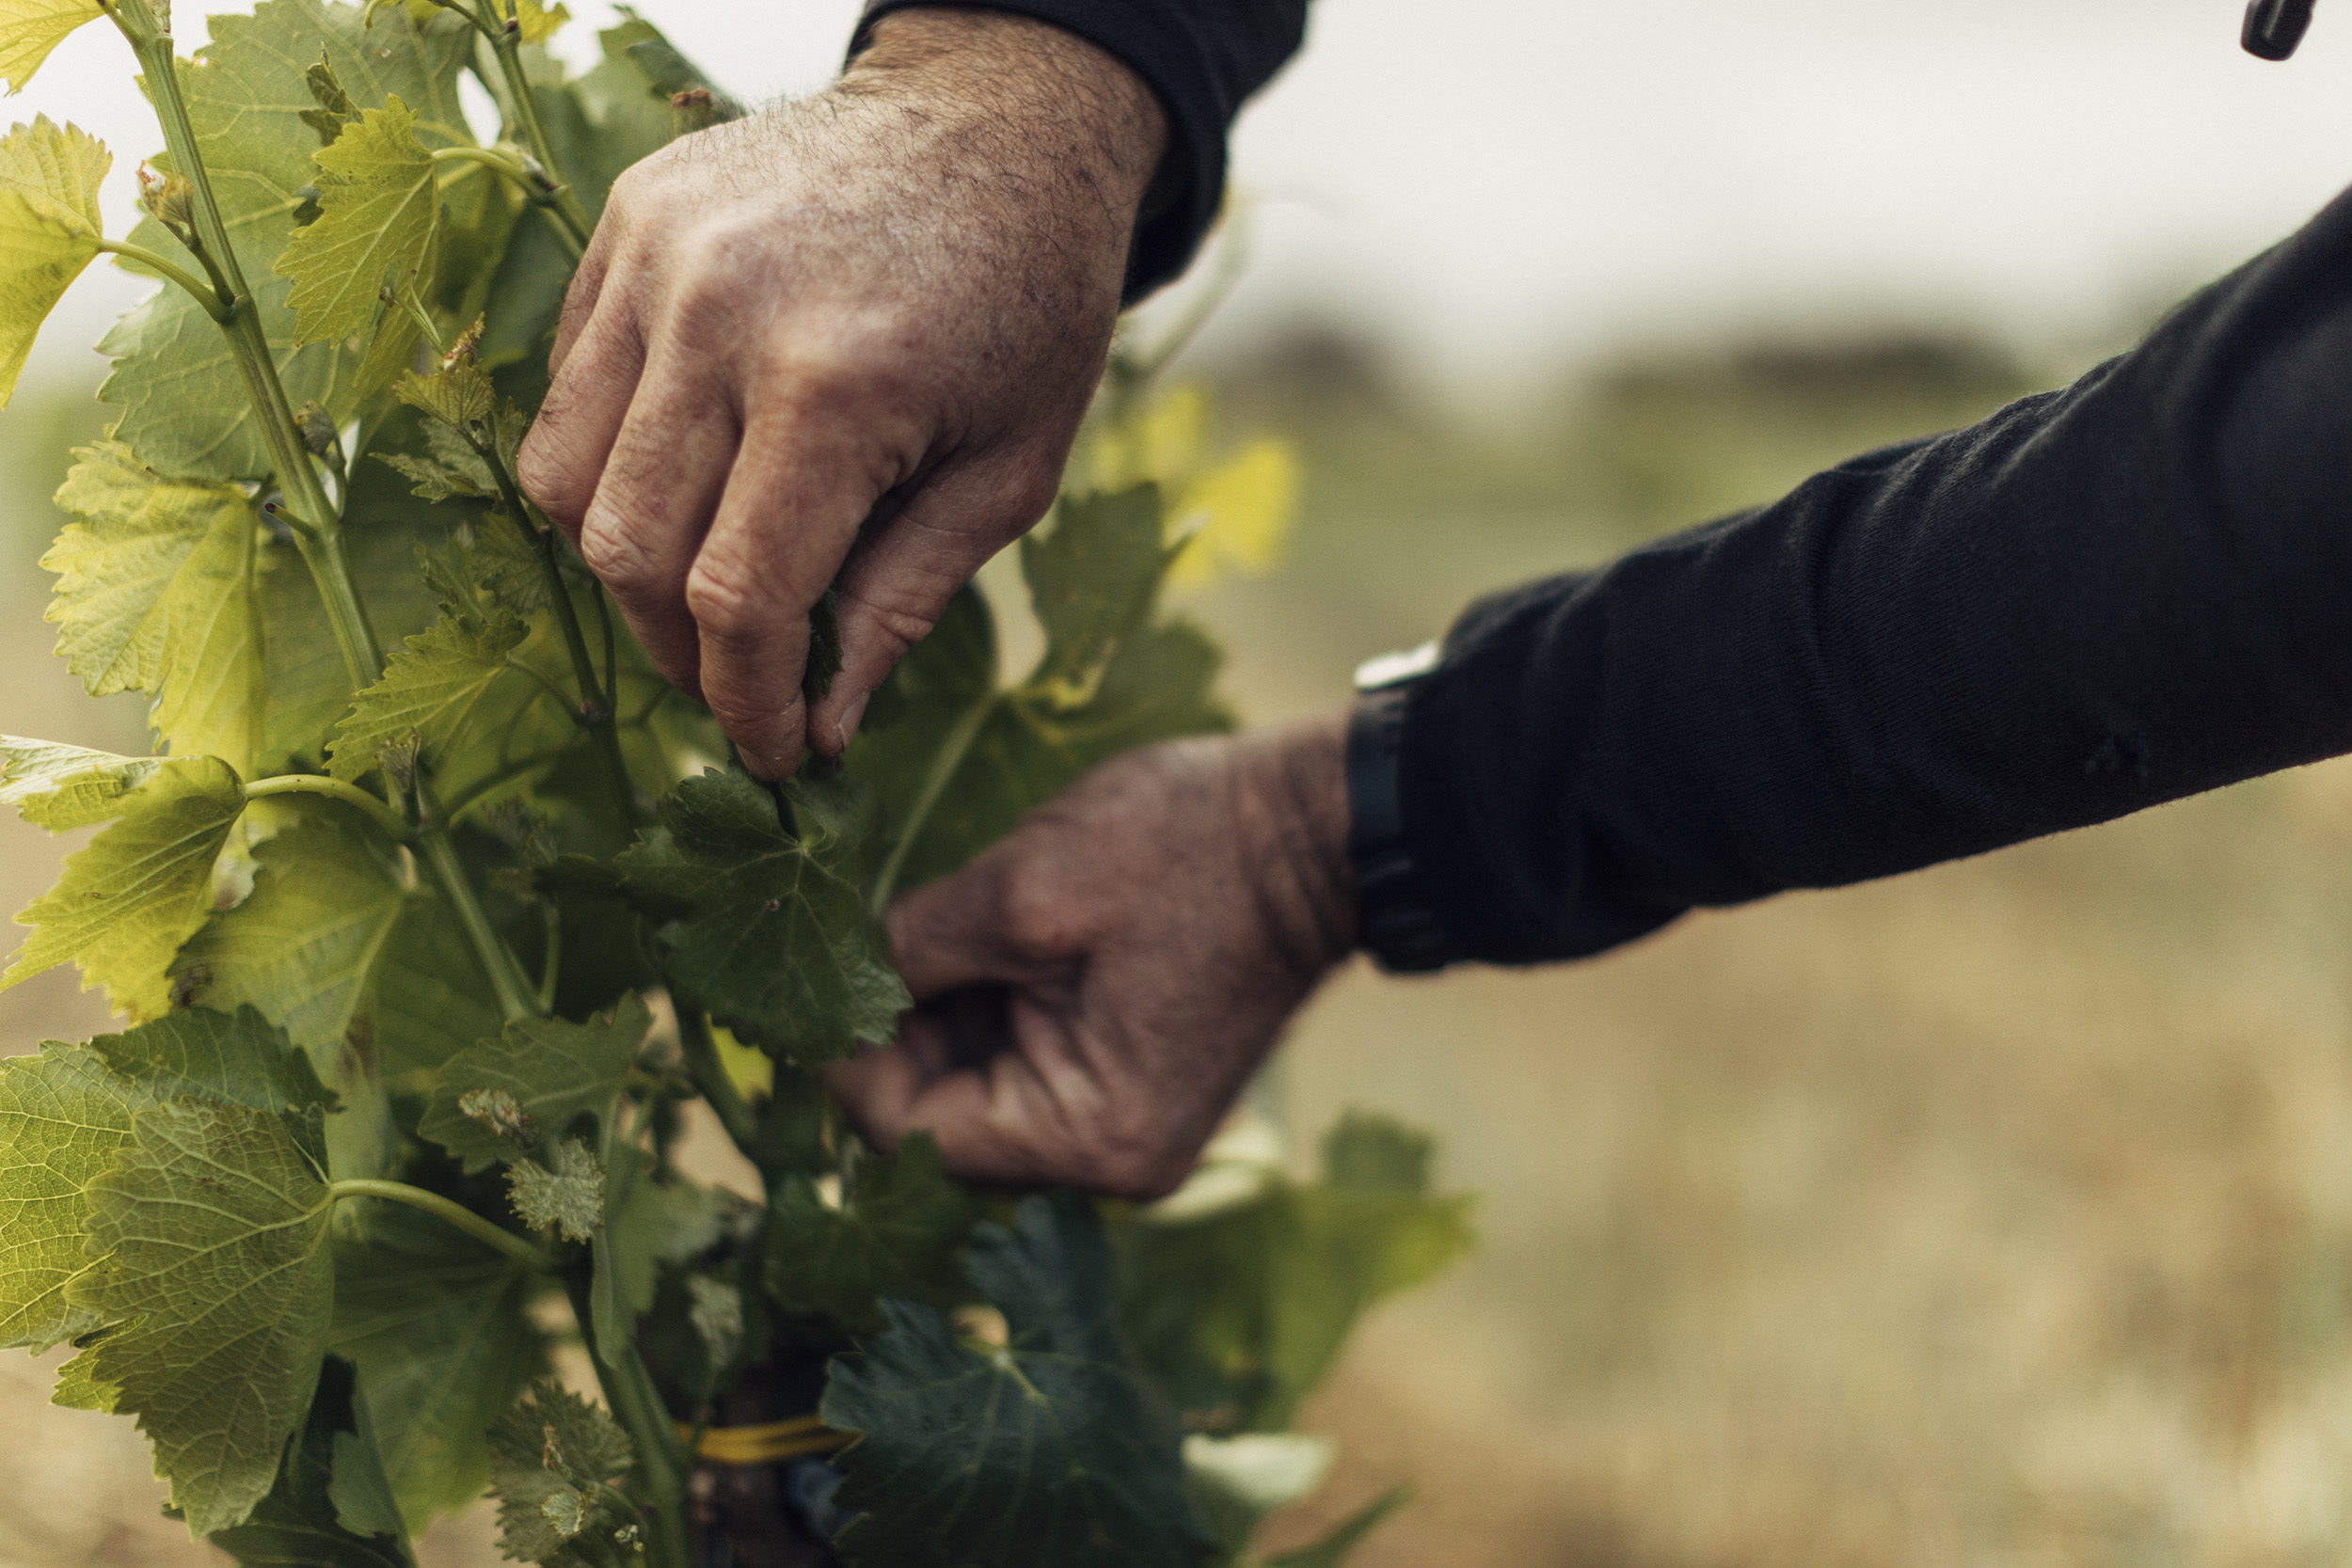 A close-up of a vineyard worker's hands working on a grape vine